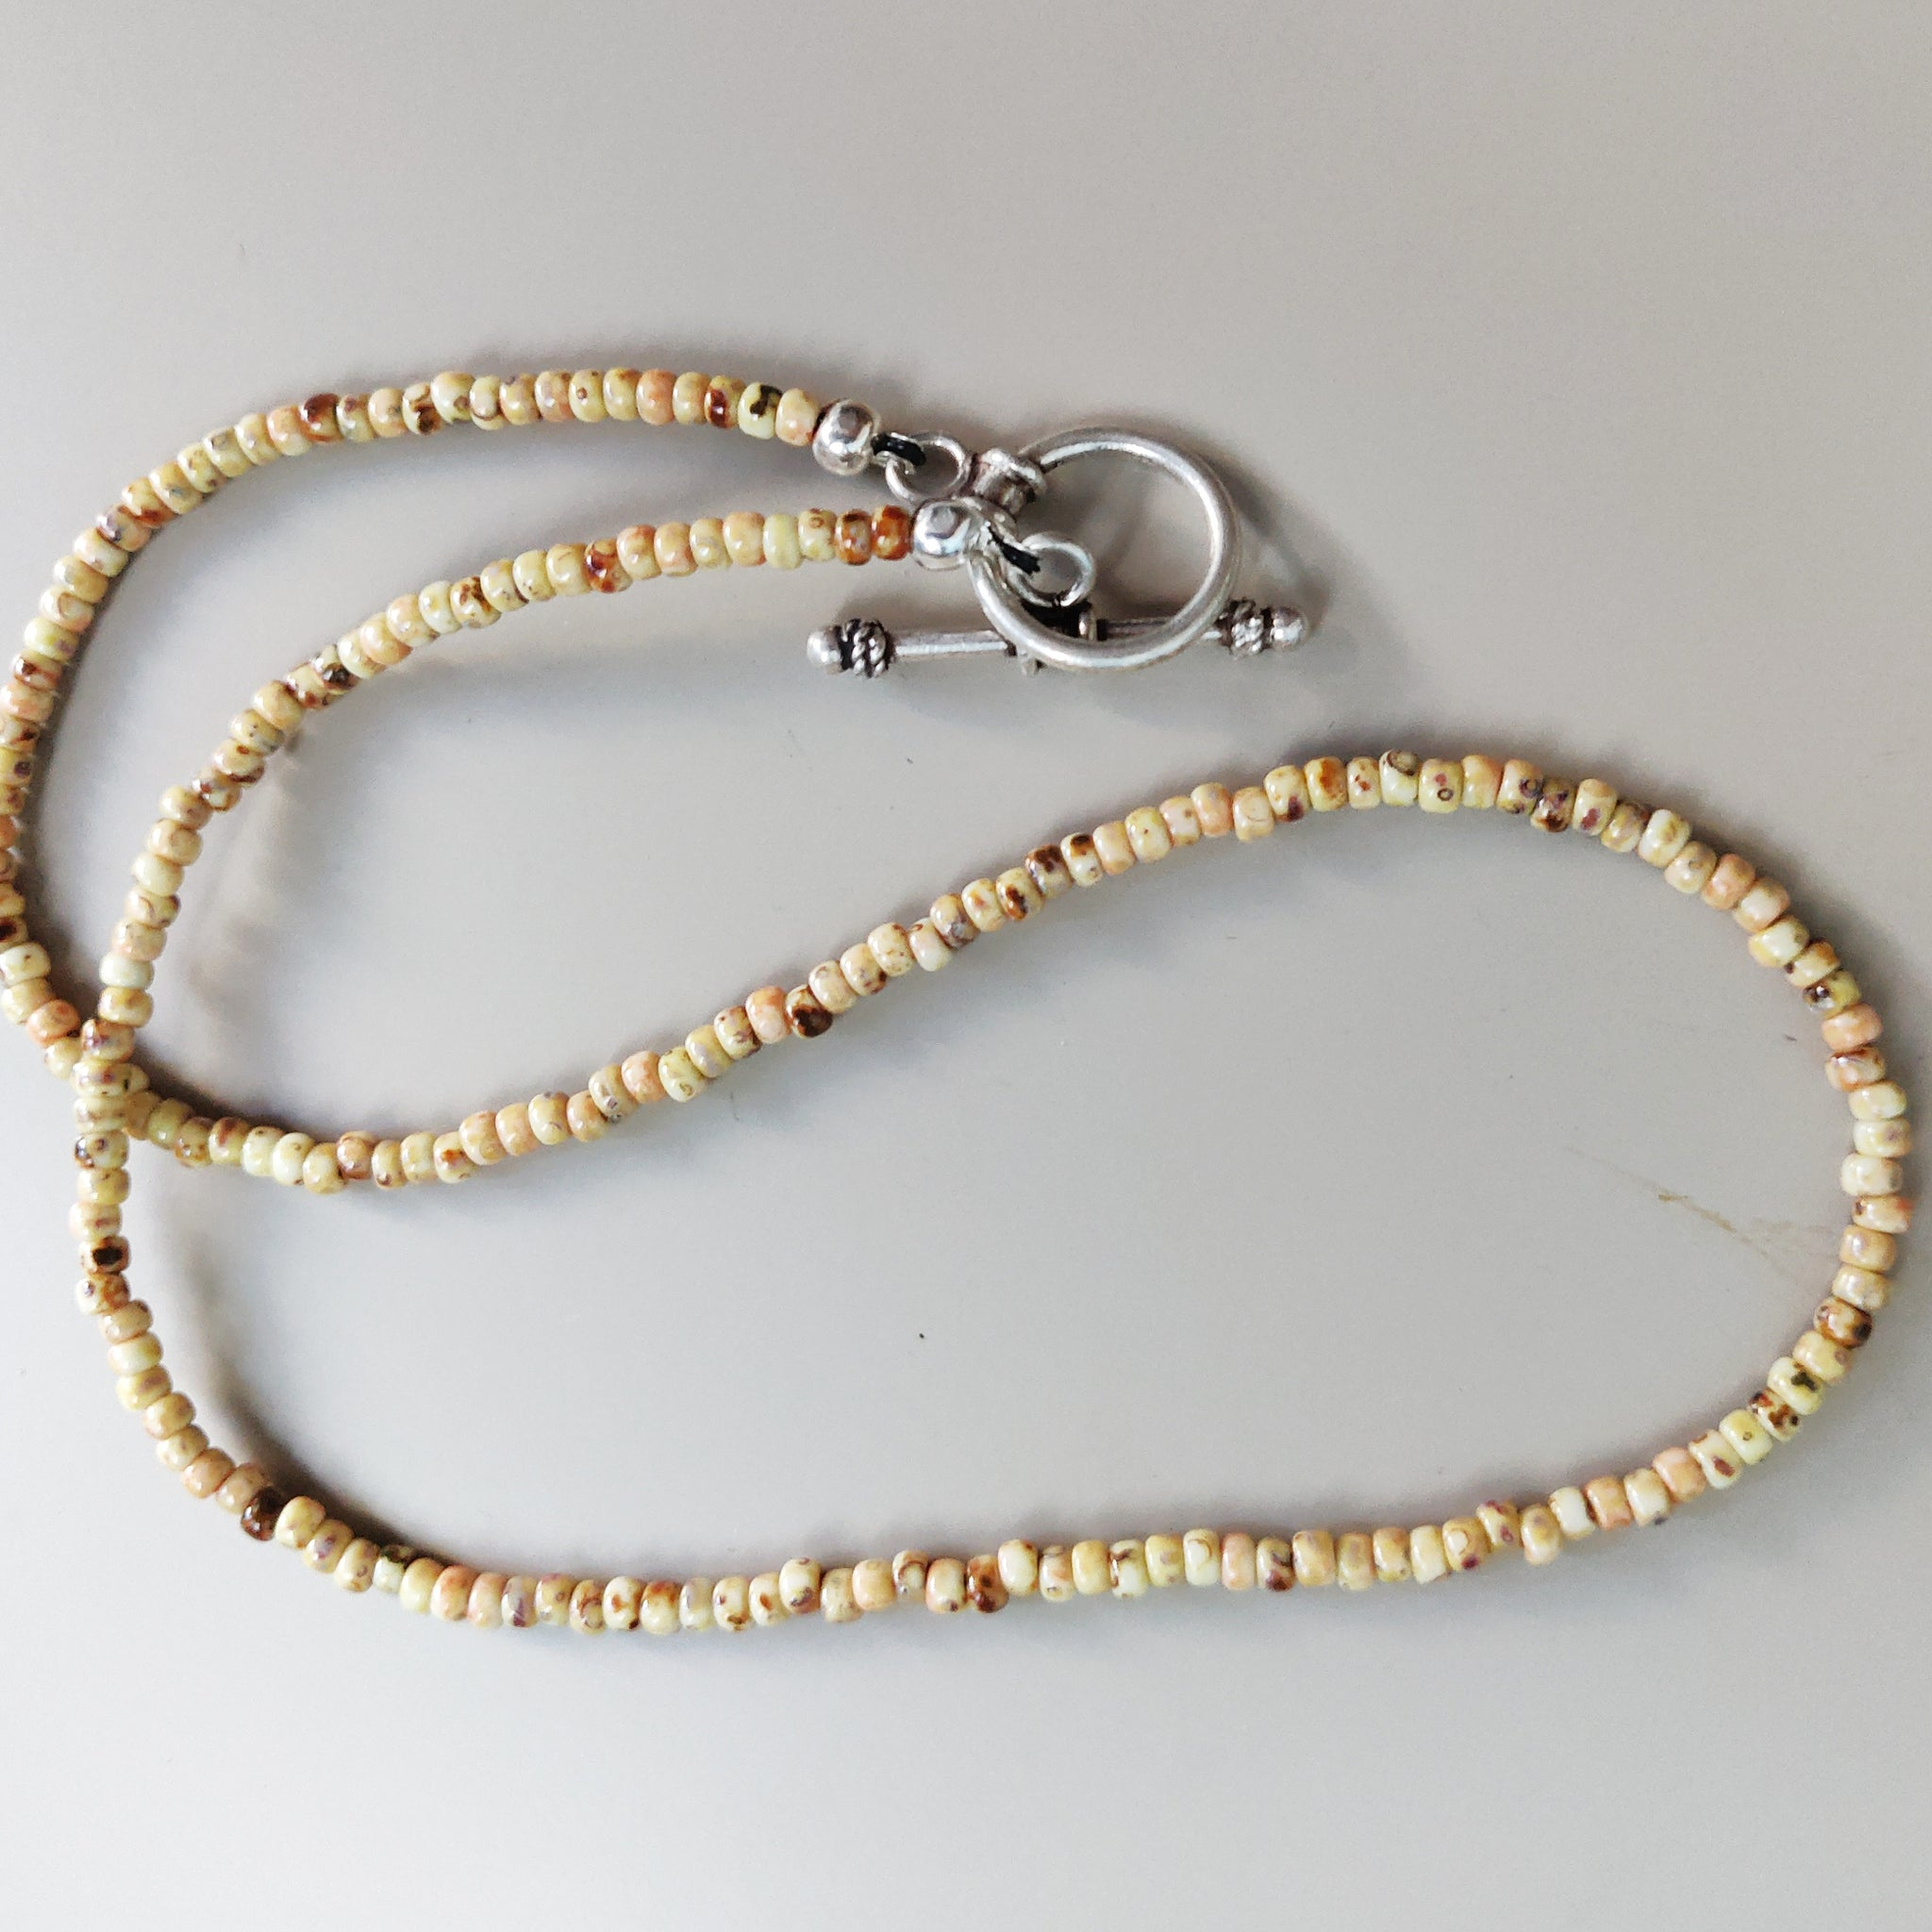 Seed Bead Inspiration Necklace in Brown and Tan